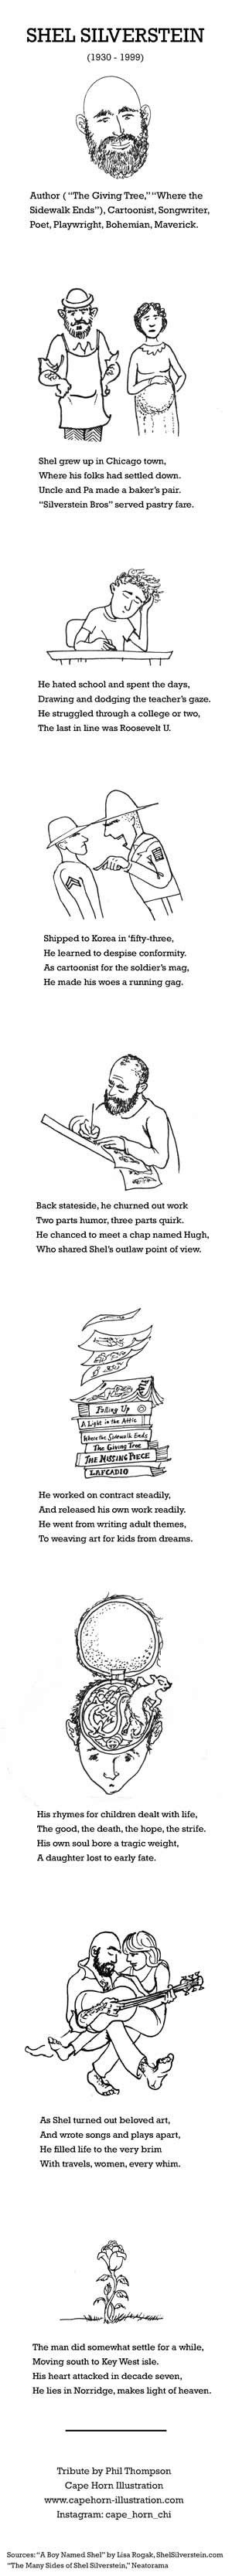 Shel Silverstein Poems About Growing Up 79226 | ENEWS